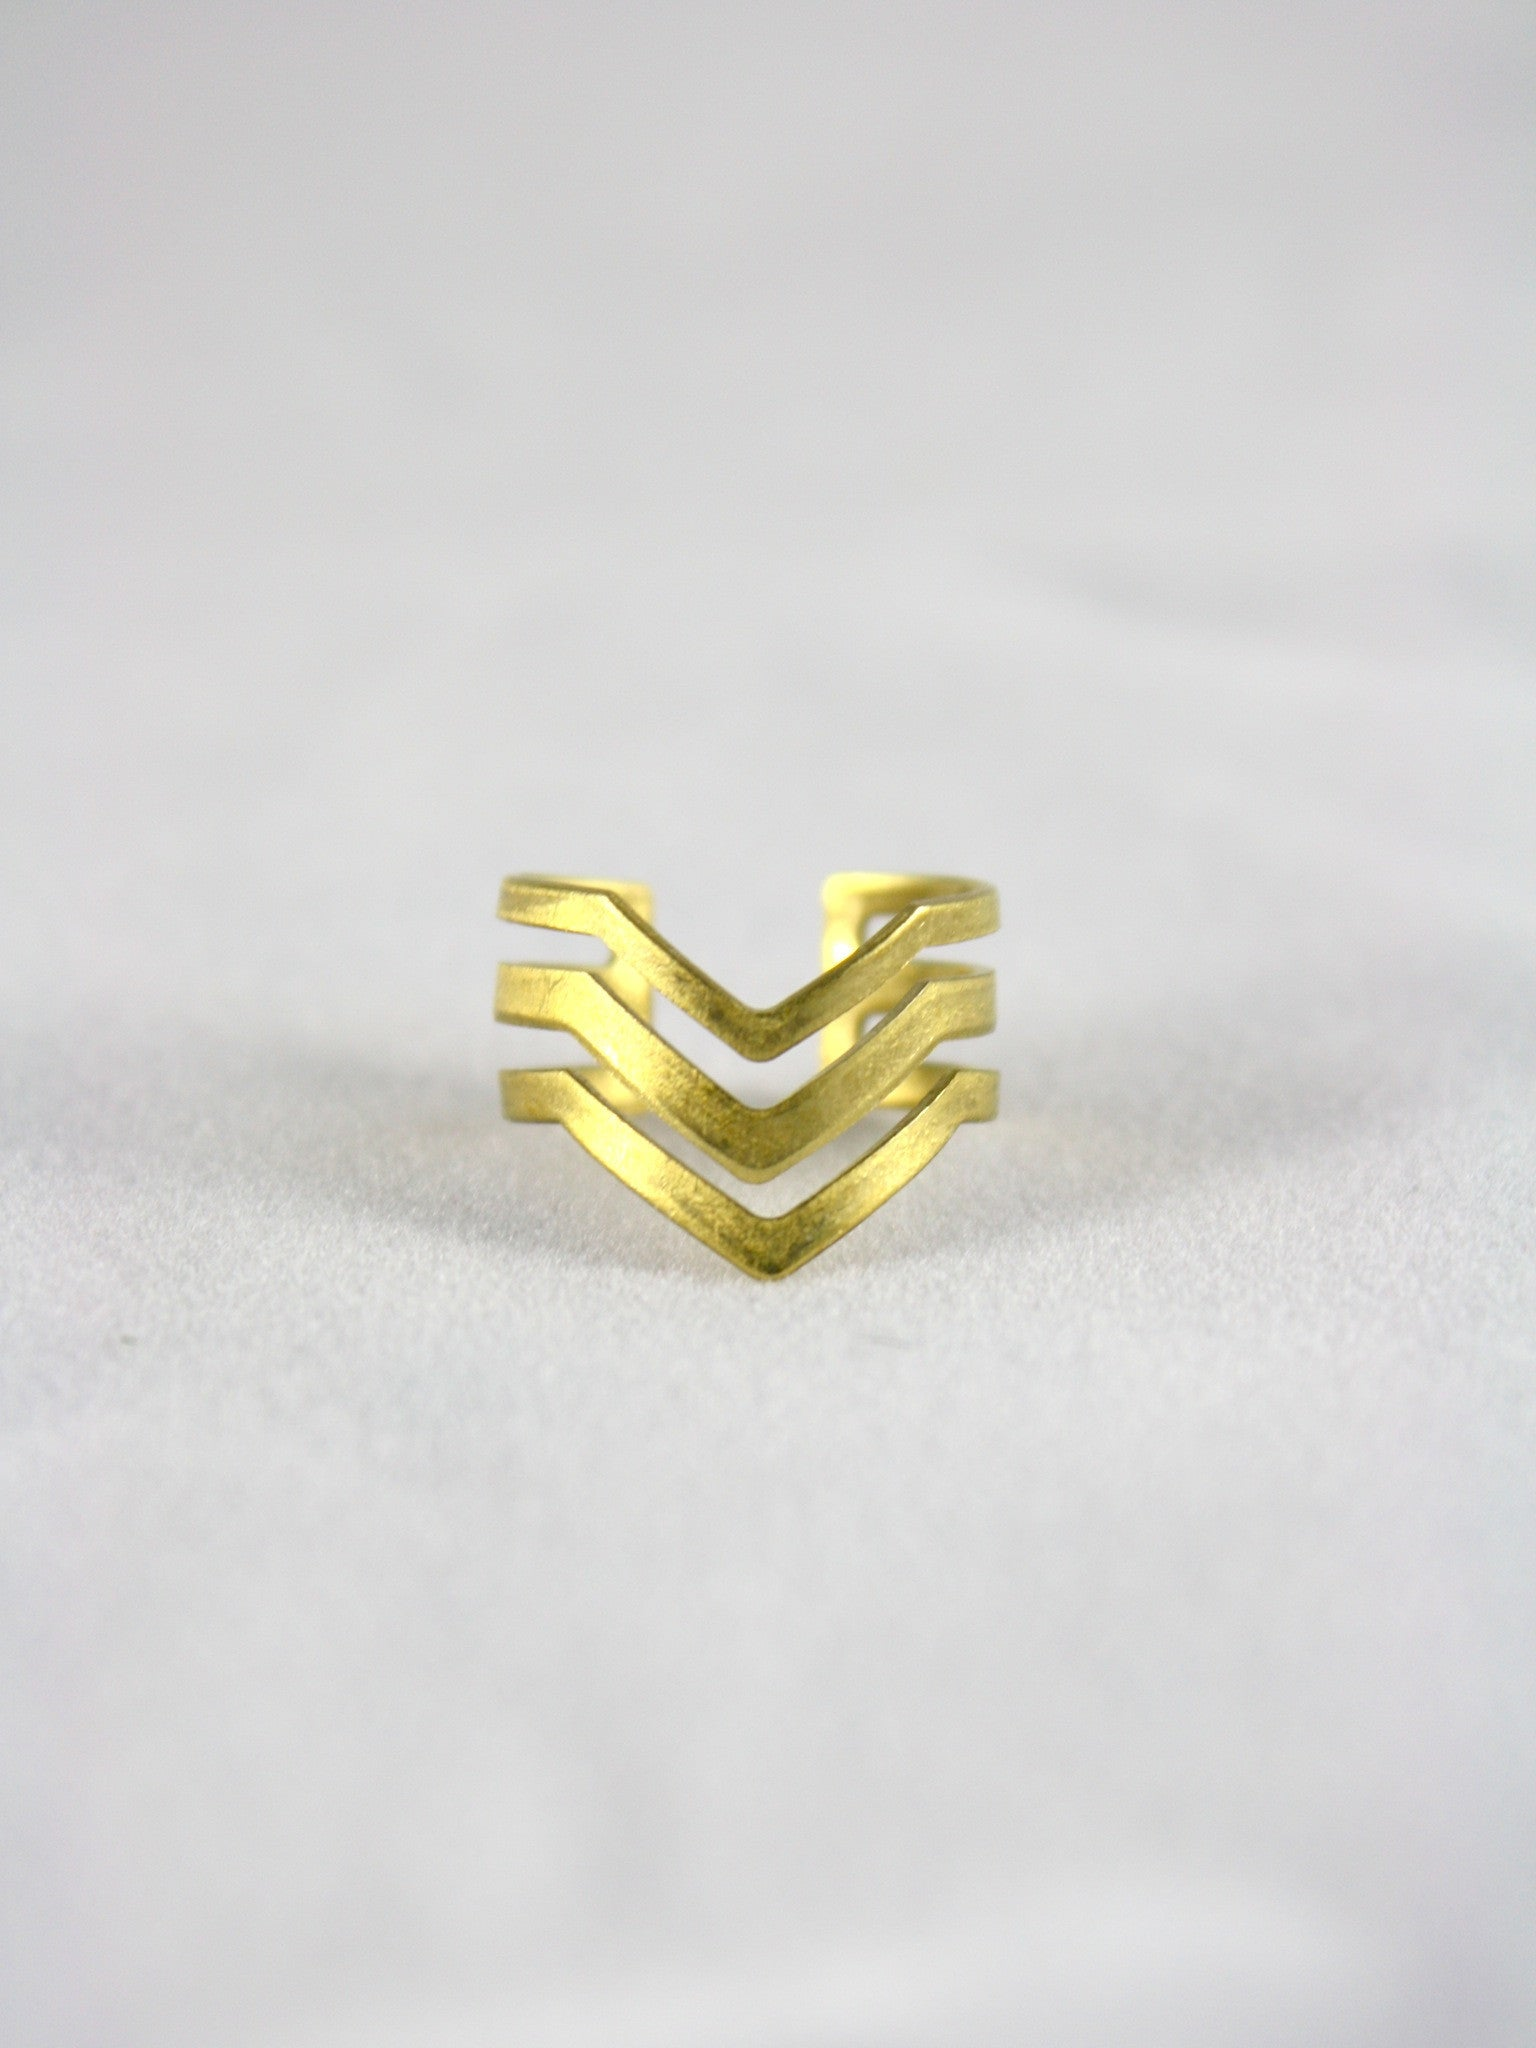 Androgynous Jewelry Chevron Ring Lovely Hunt QPOC Designer Absynia